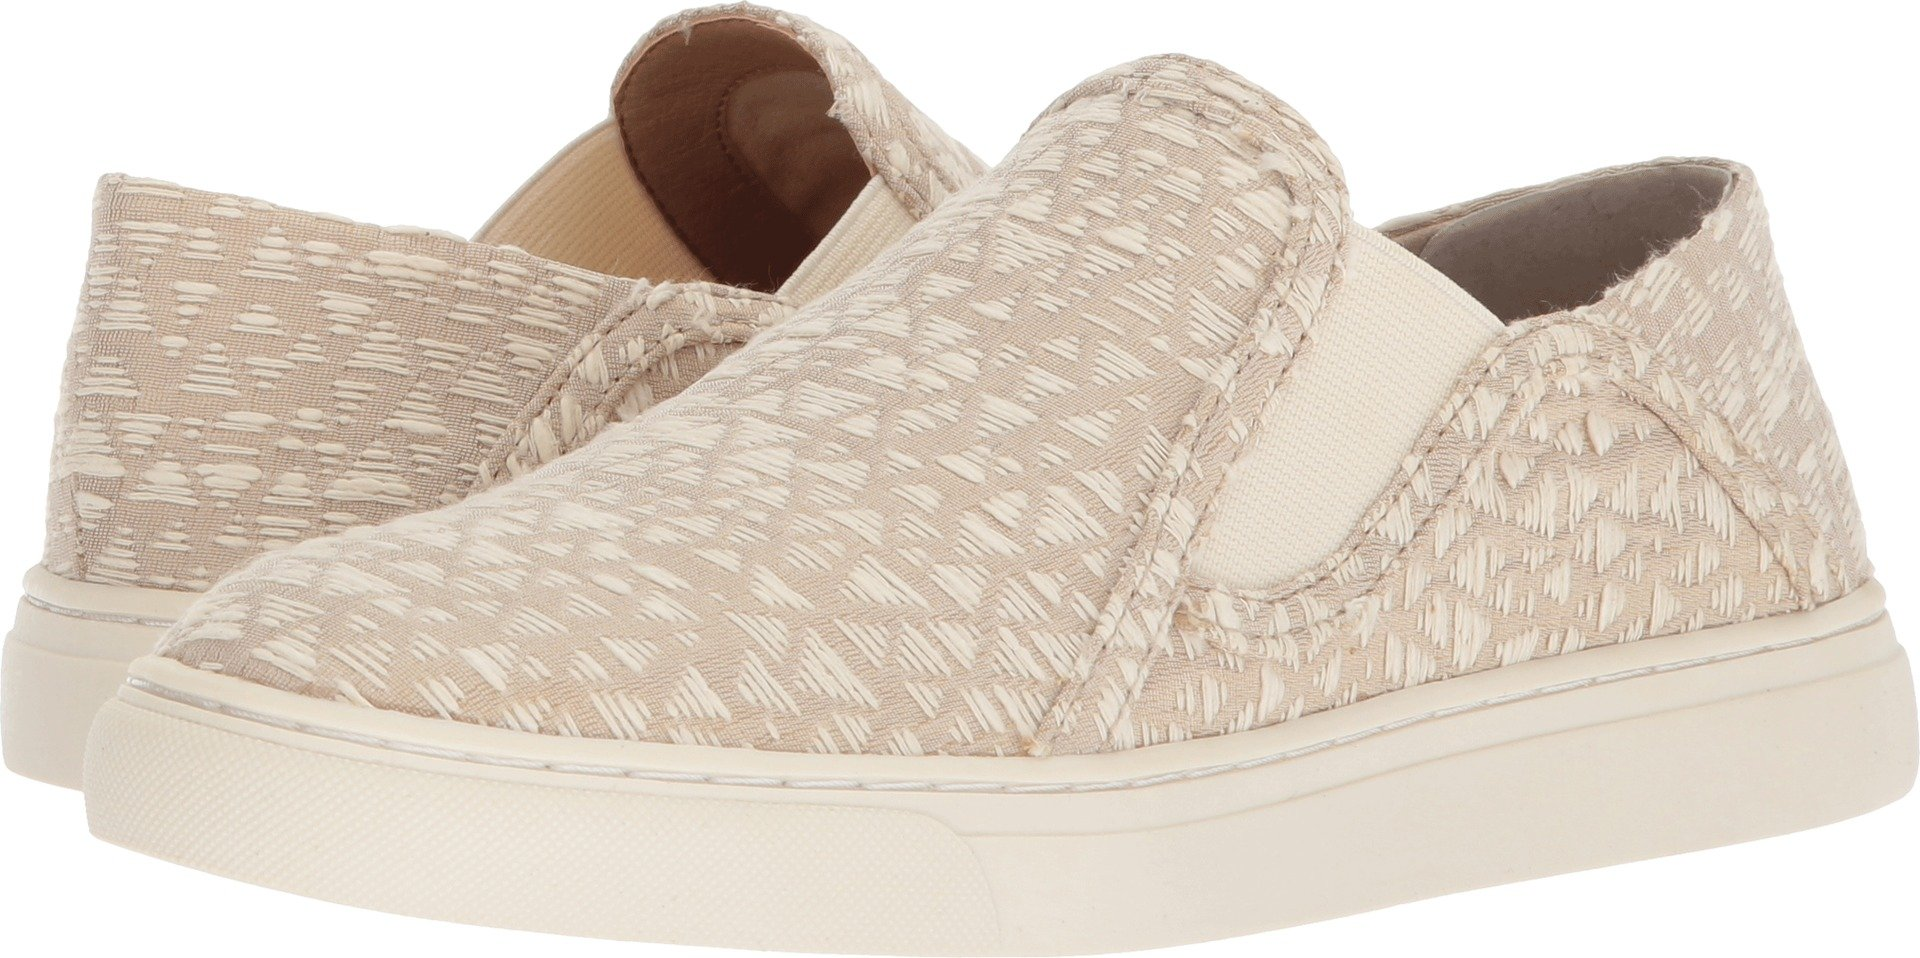 Lucky Brand Women's Lailom Sneaker, Travertine, 6 M US